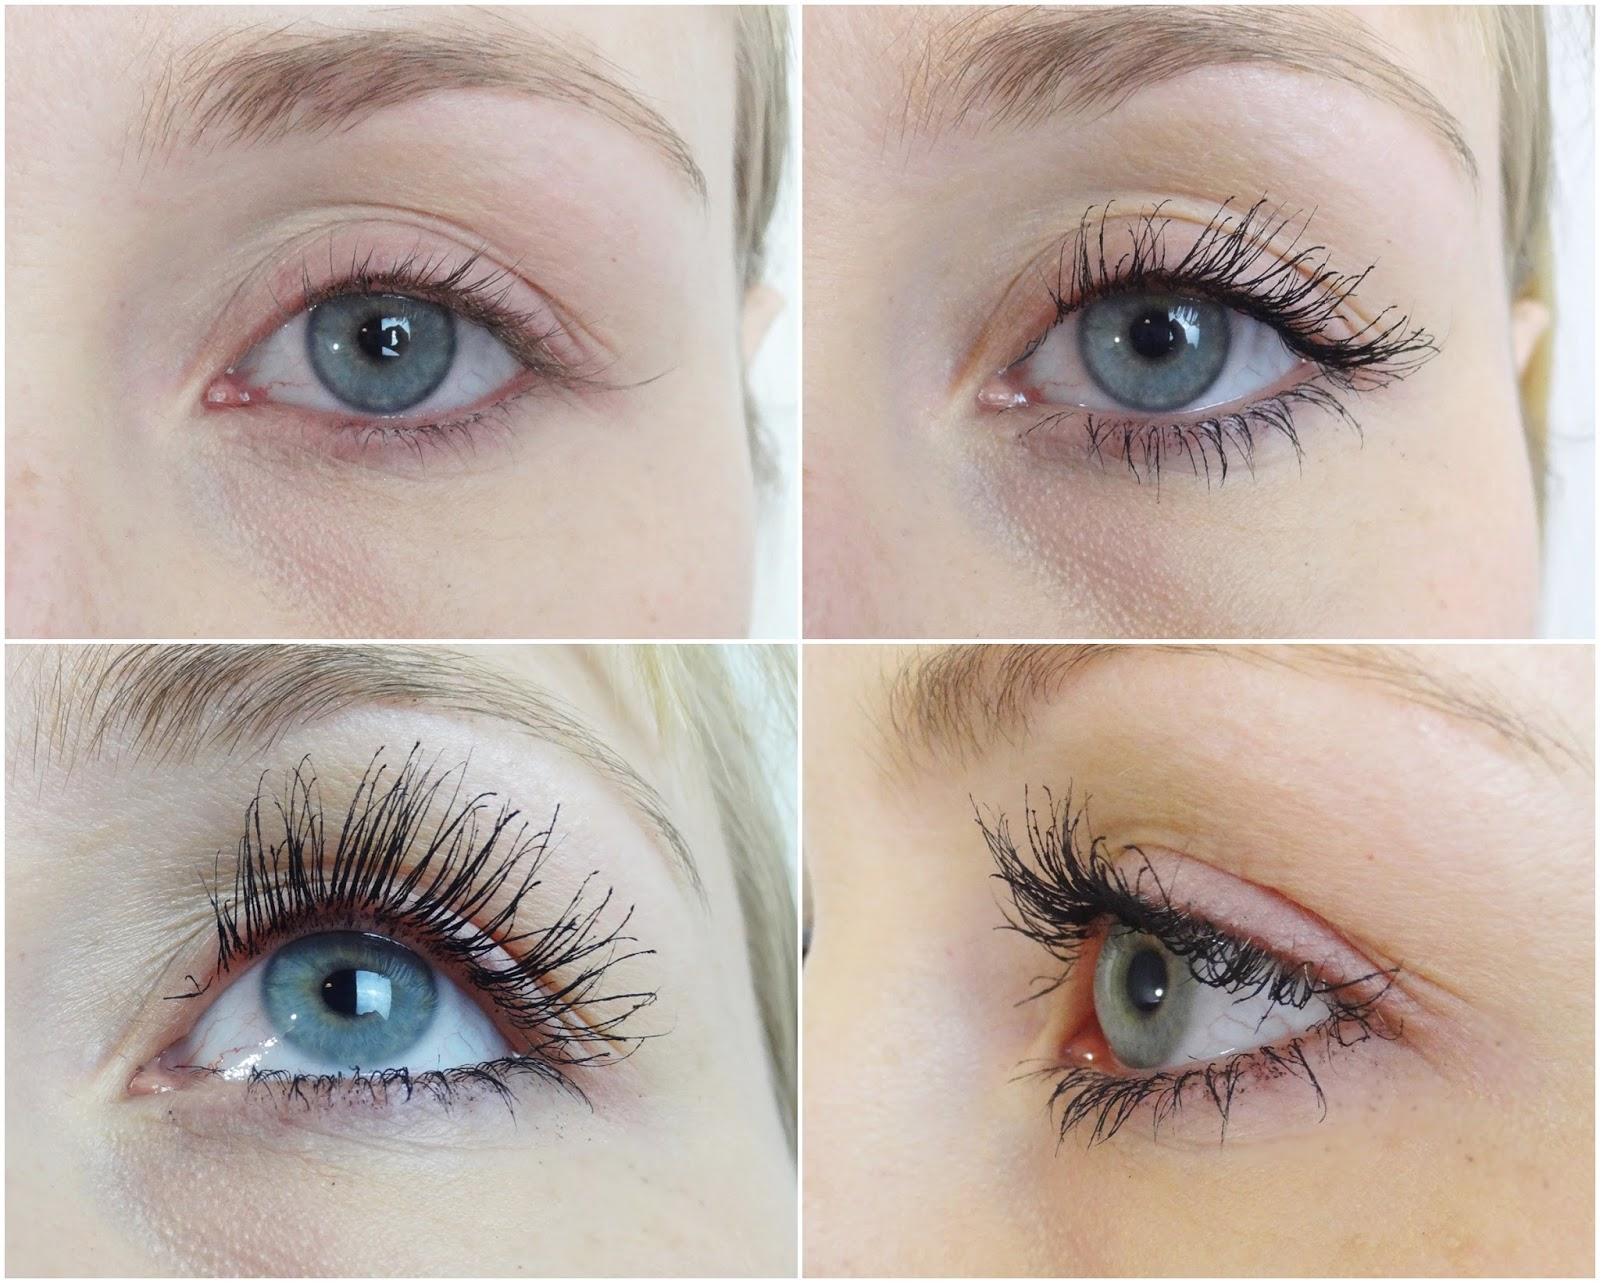 Bobbi Brown - Smokey Eye Mascara Pretty Clover Beautyblog Mascara Test Review